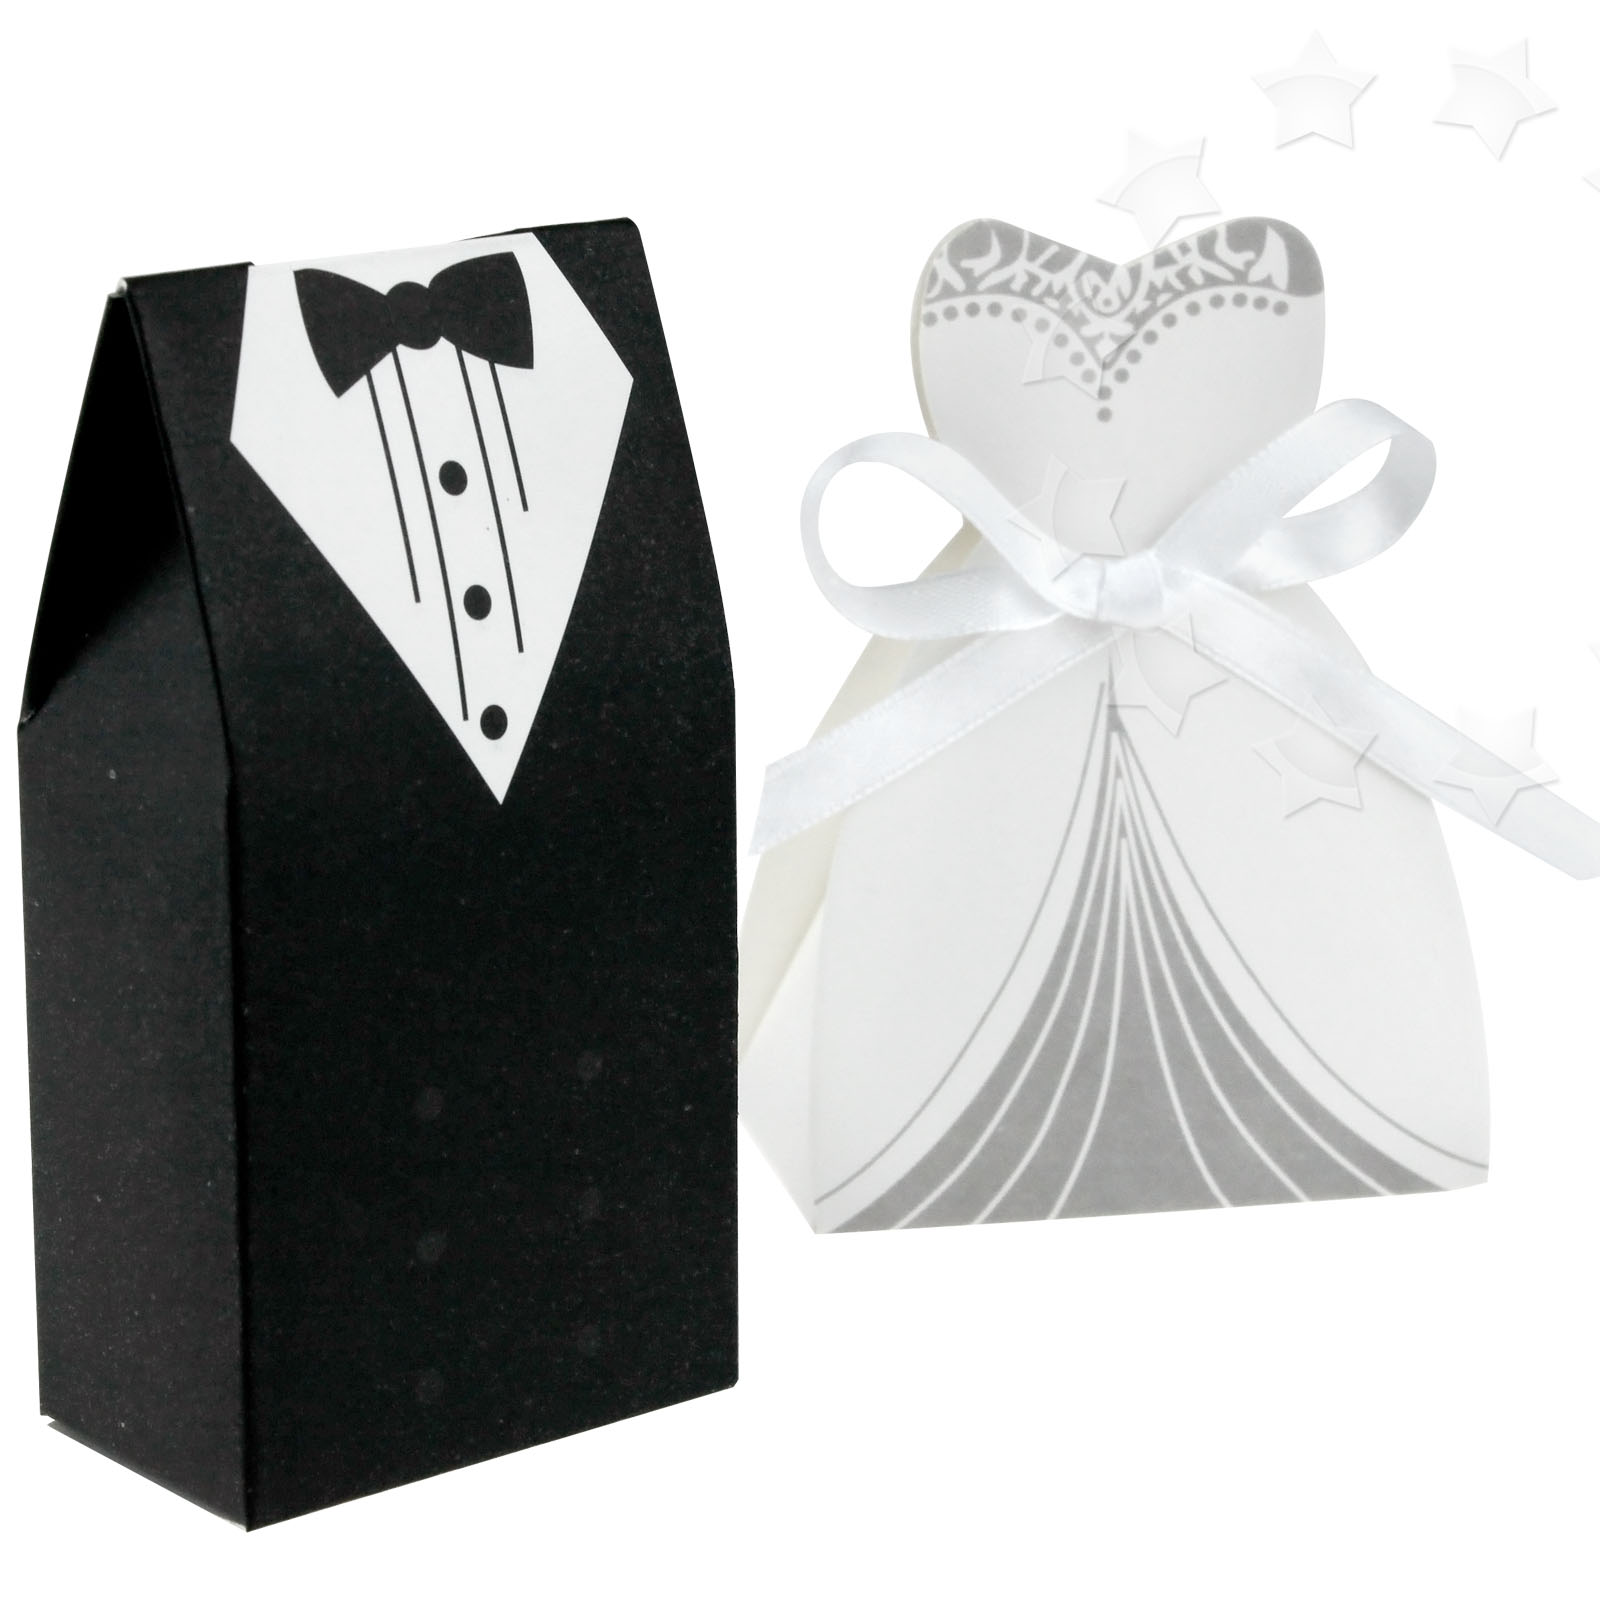 New 100 x Wedding Party Favor Lovely Candy Boxes Gift Bride Groom ...